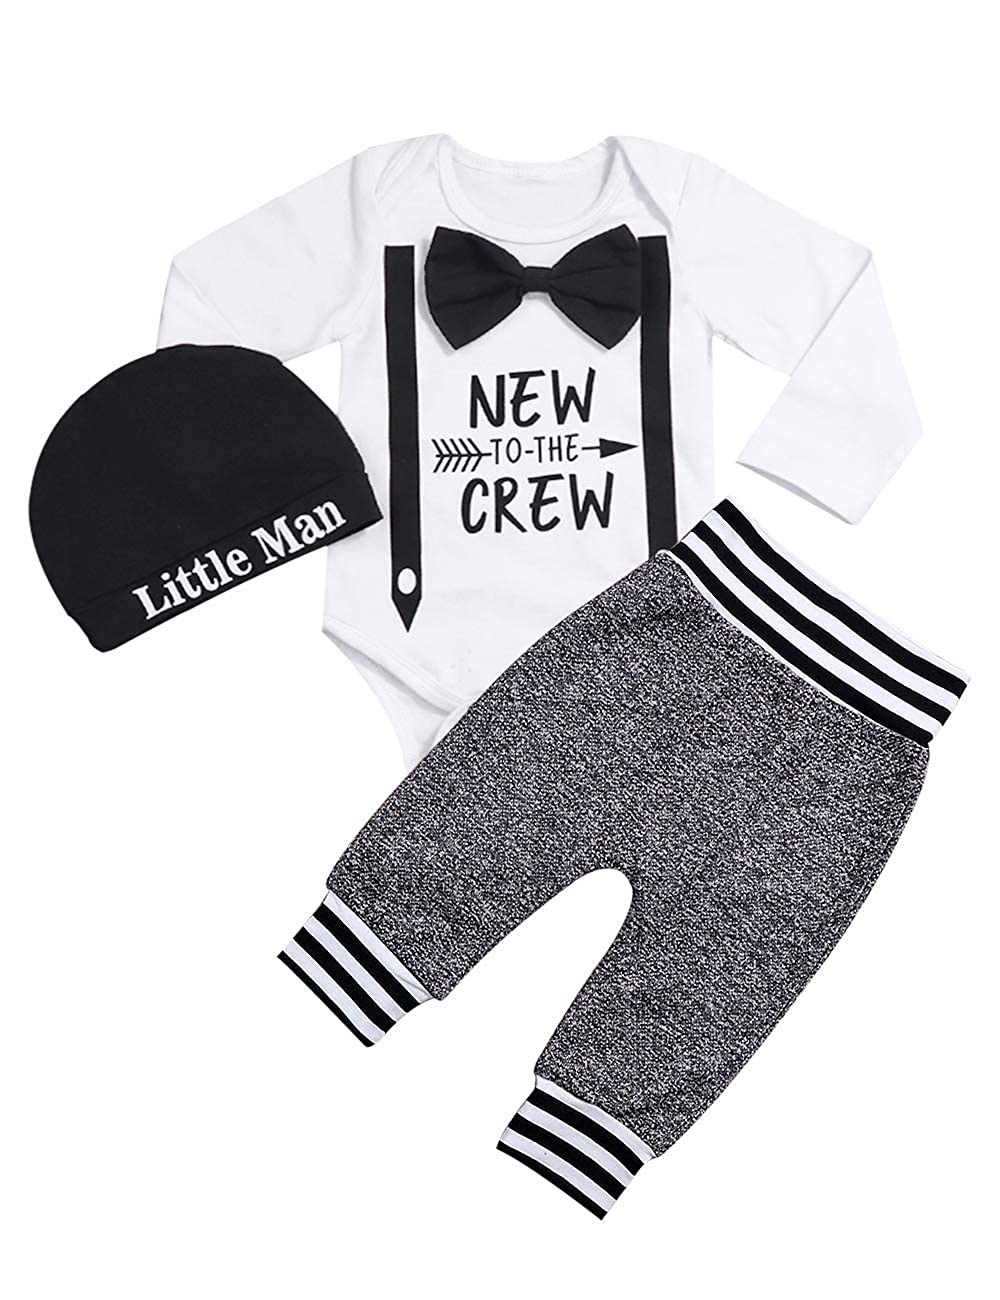 itkidboy Sibling Outfits Set The Crew Sweatshirt & New to The Crew Long Sleeve Romper Pants Matching Outfit Set